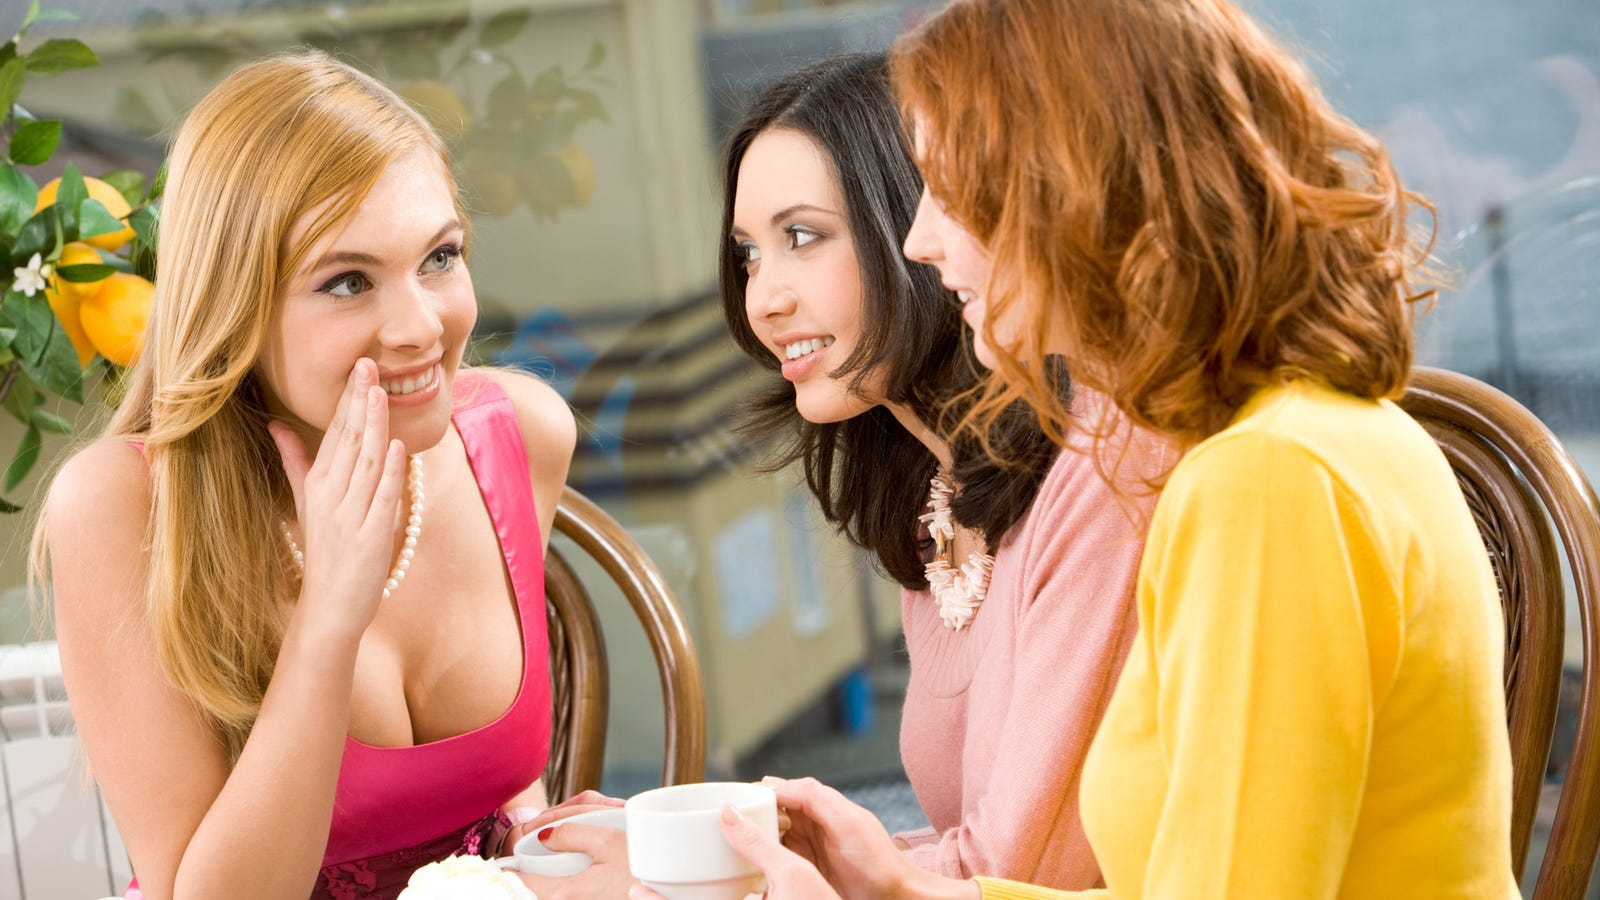 Workplace Gossip Can Help You Make Friends But It Can